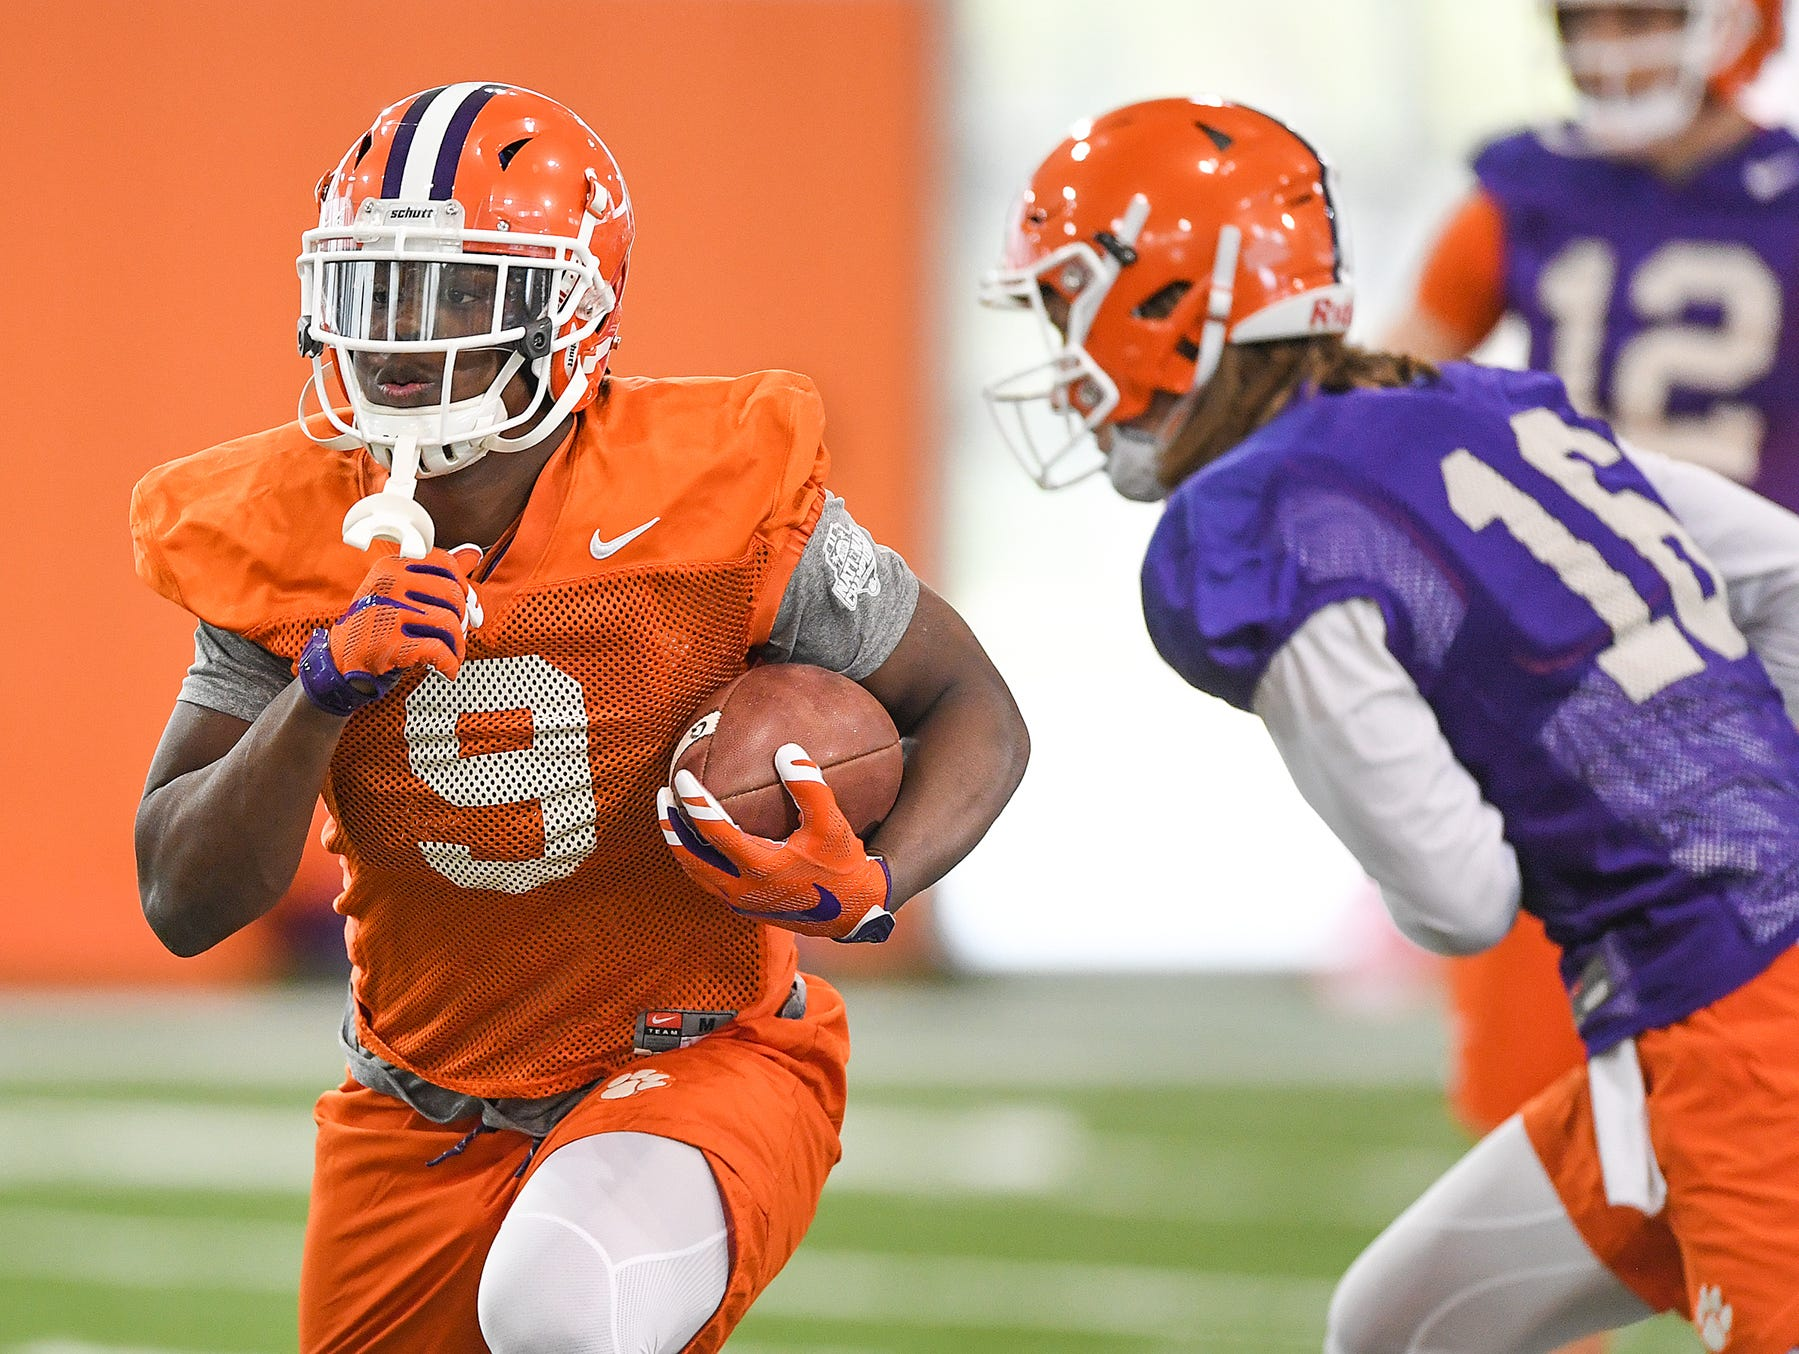 Clemson running back Travis Etienne (9) during the Tigers Cotton Bowl practice on Wednesday, December 12, 2018.